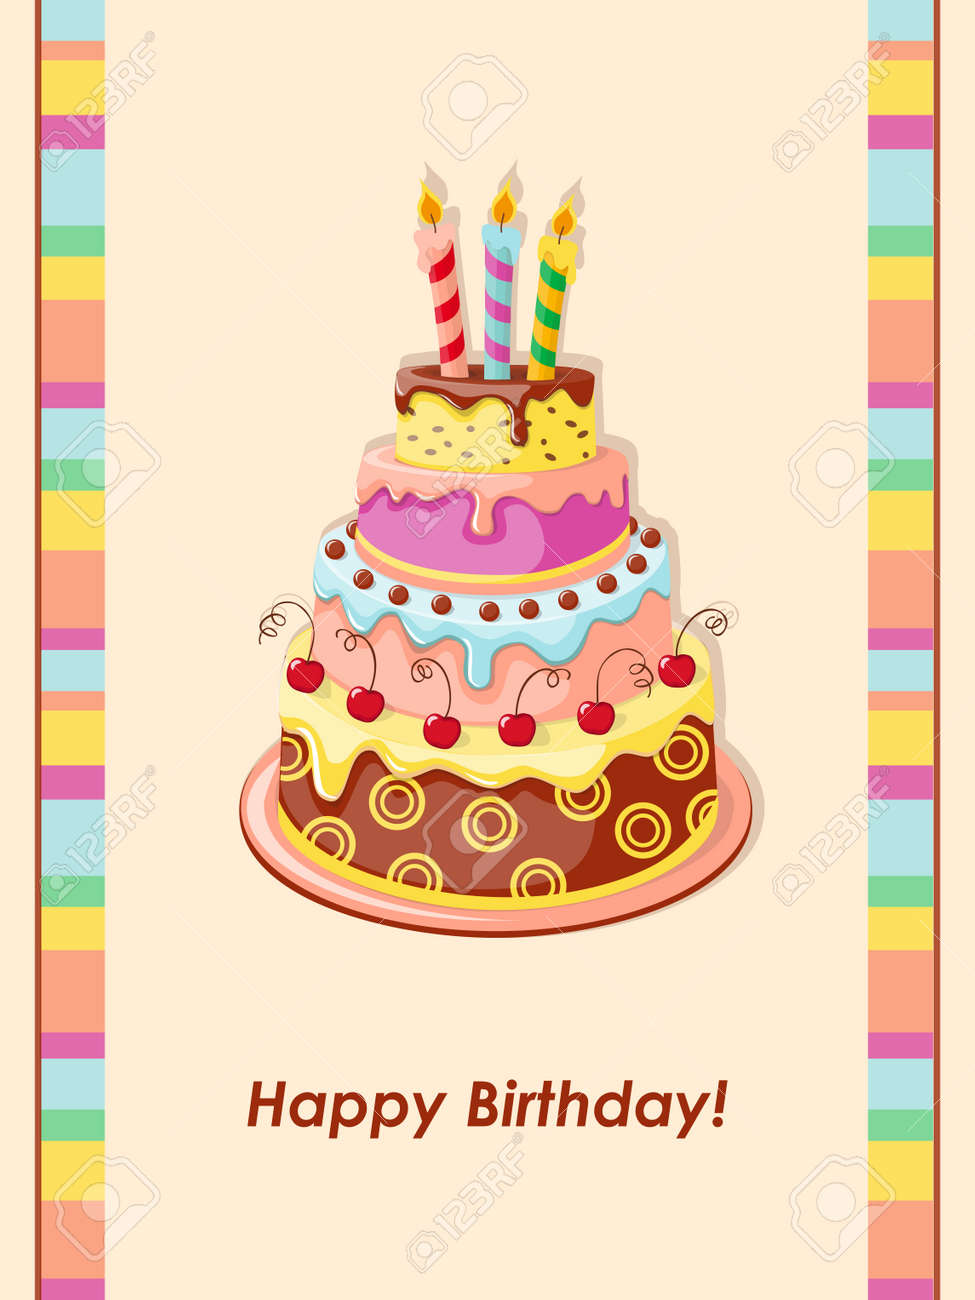 Festive Colorful Birthday Card With Cake Tier Candles And Royalty